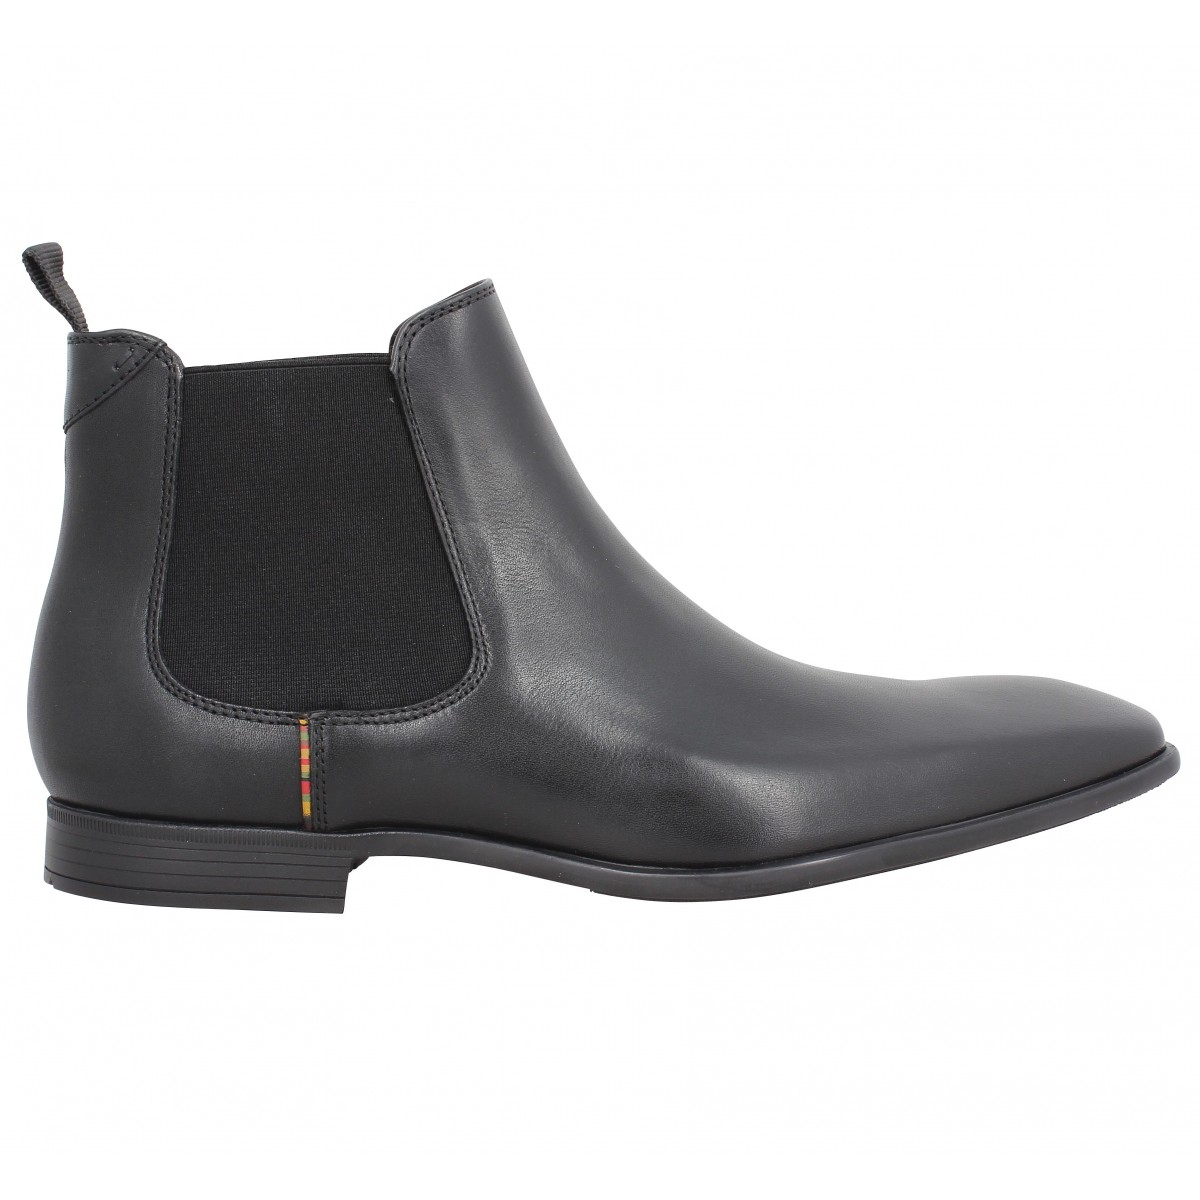 Marques Chaussure luxe homme Paul Smith homme Jean Black